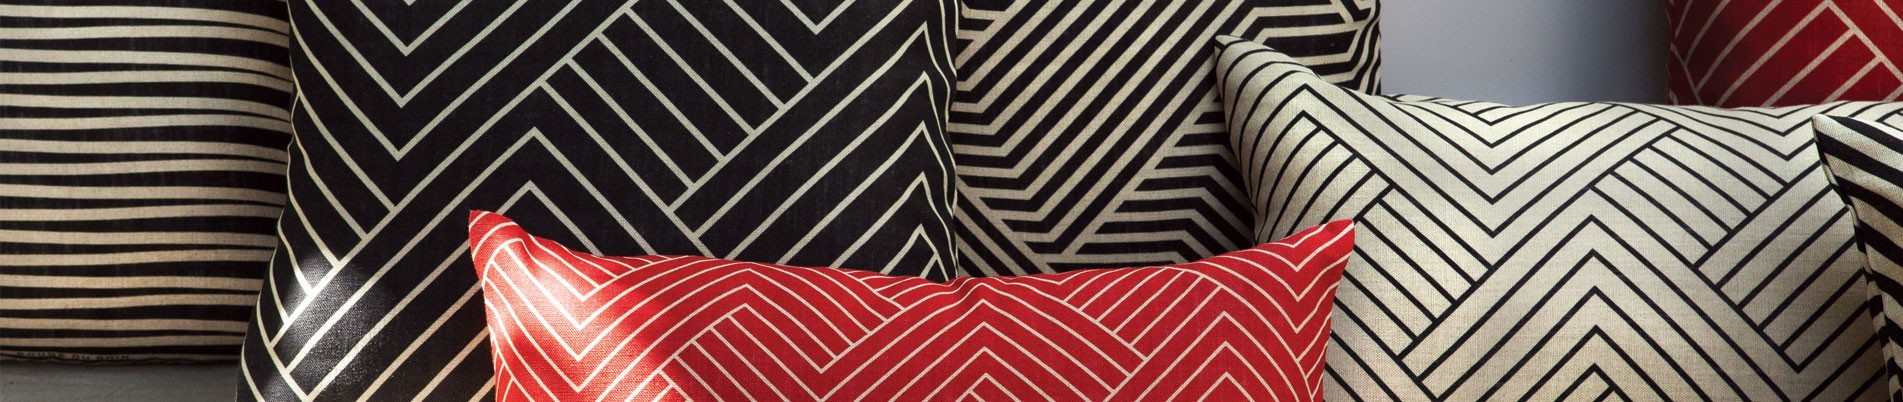 Stripes cushions